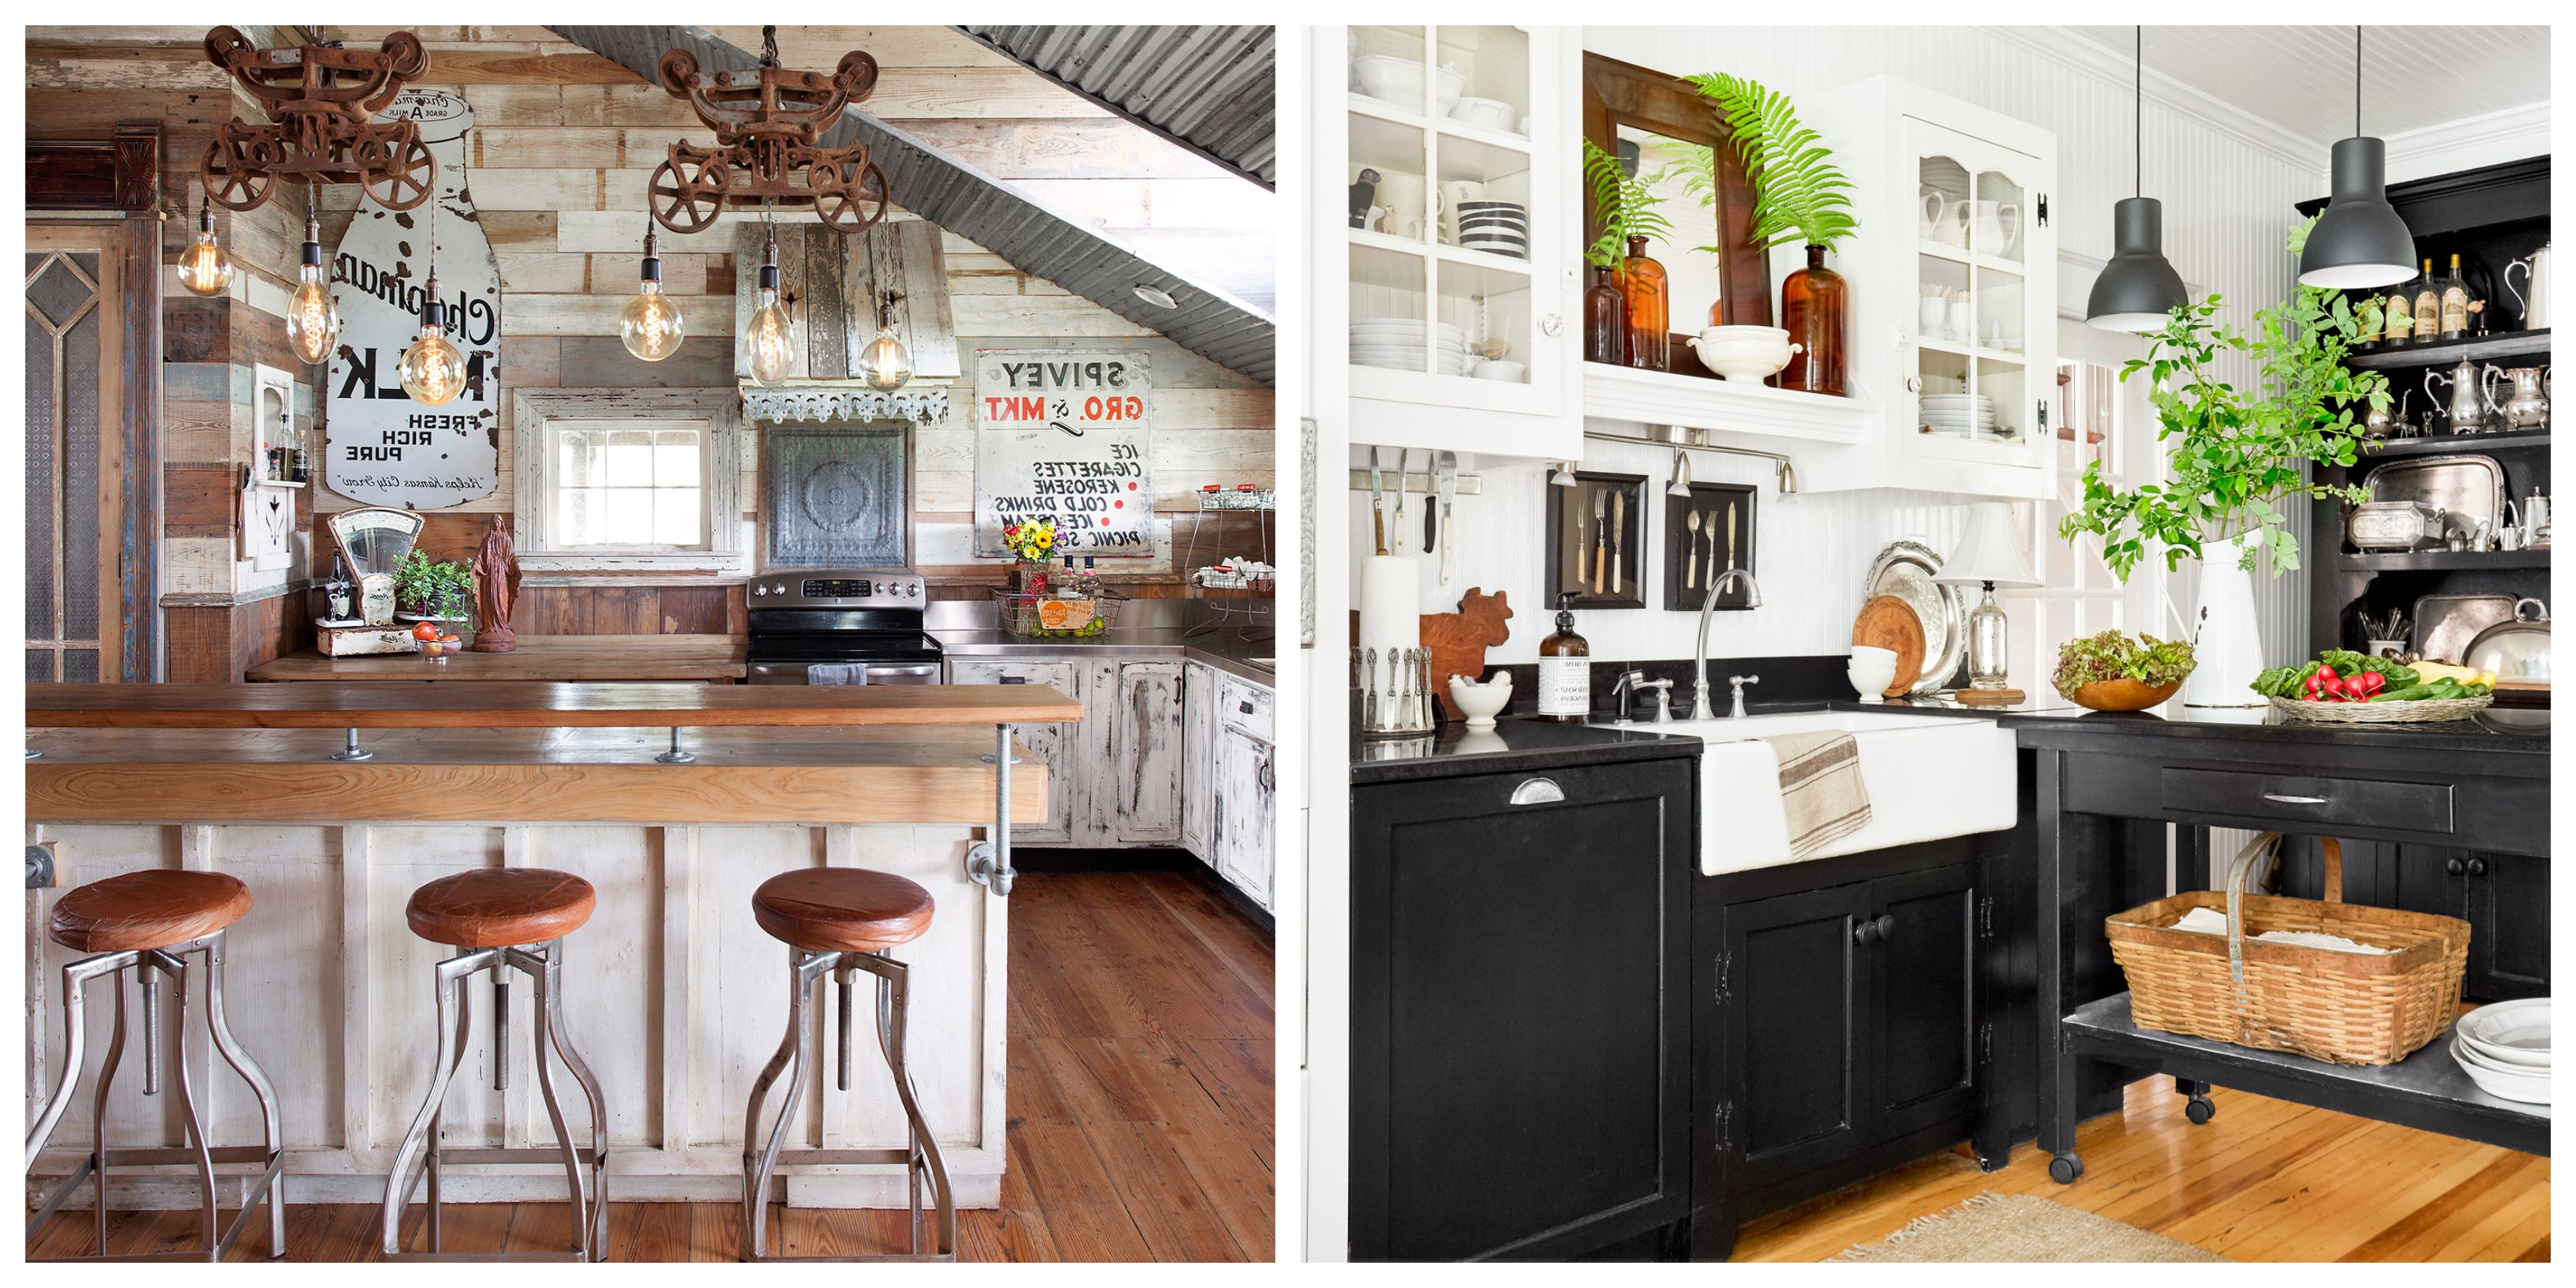 34 Farmhouse Style Kitchens – Rustic Decor Ideas For Kitchens Regarding Preferred Farm Metal Wall Rack And 3 Tin Pot With Hanger Wall Decor (View 20 of 20)